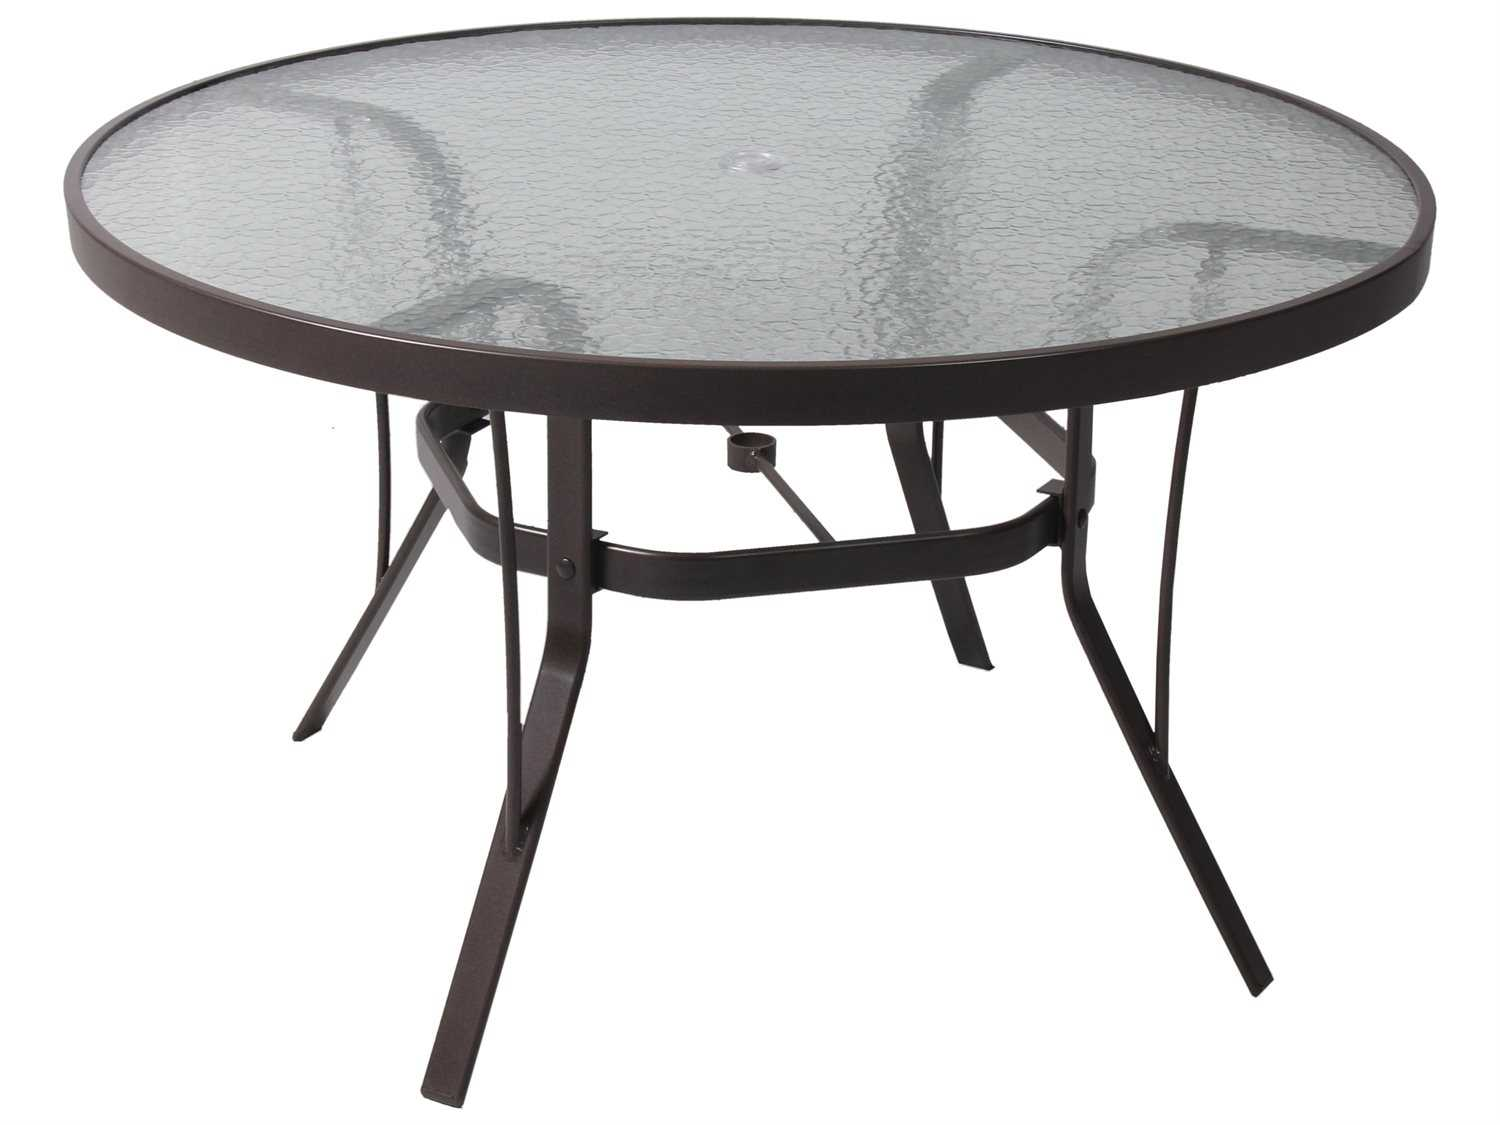 Home Patio Tables Dining Tables Shop All Suncoast